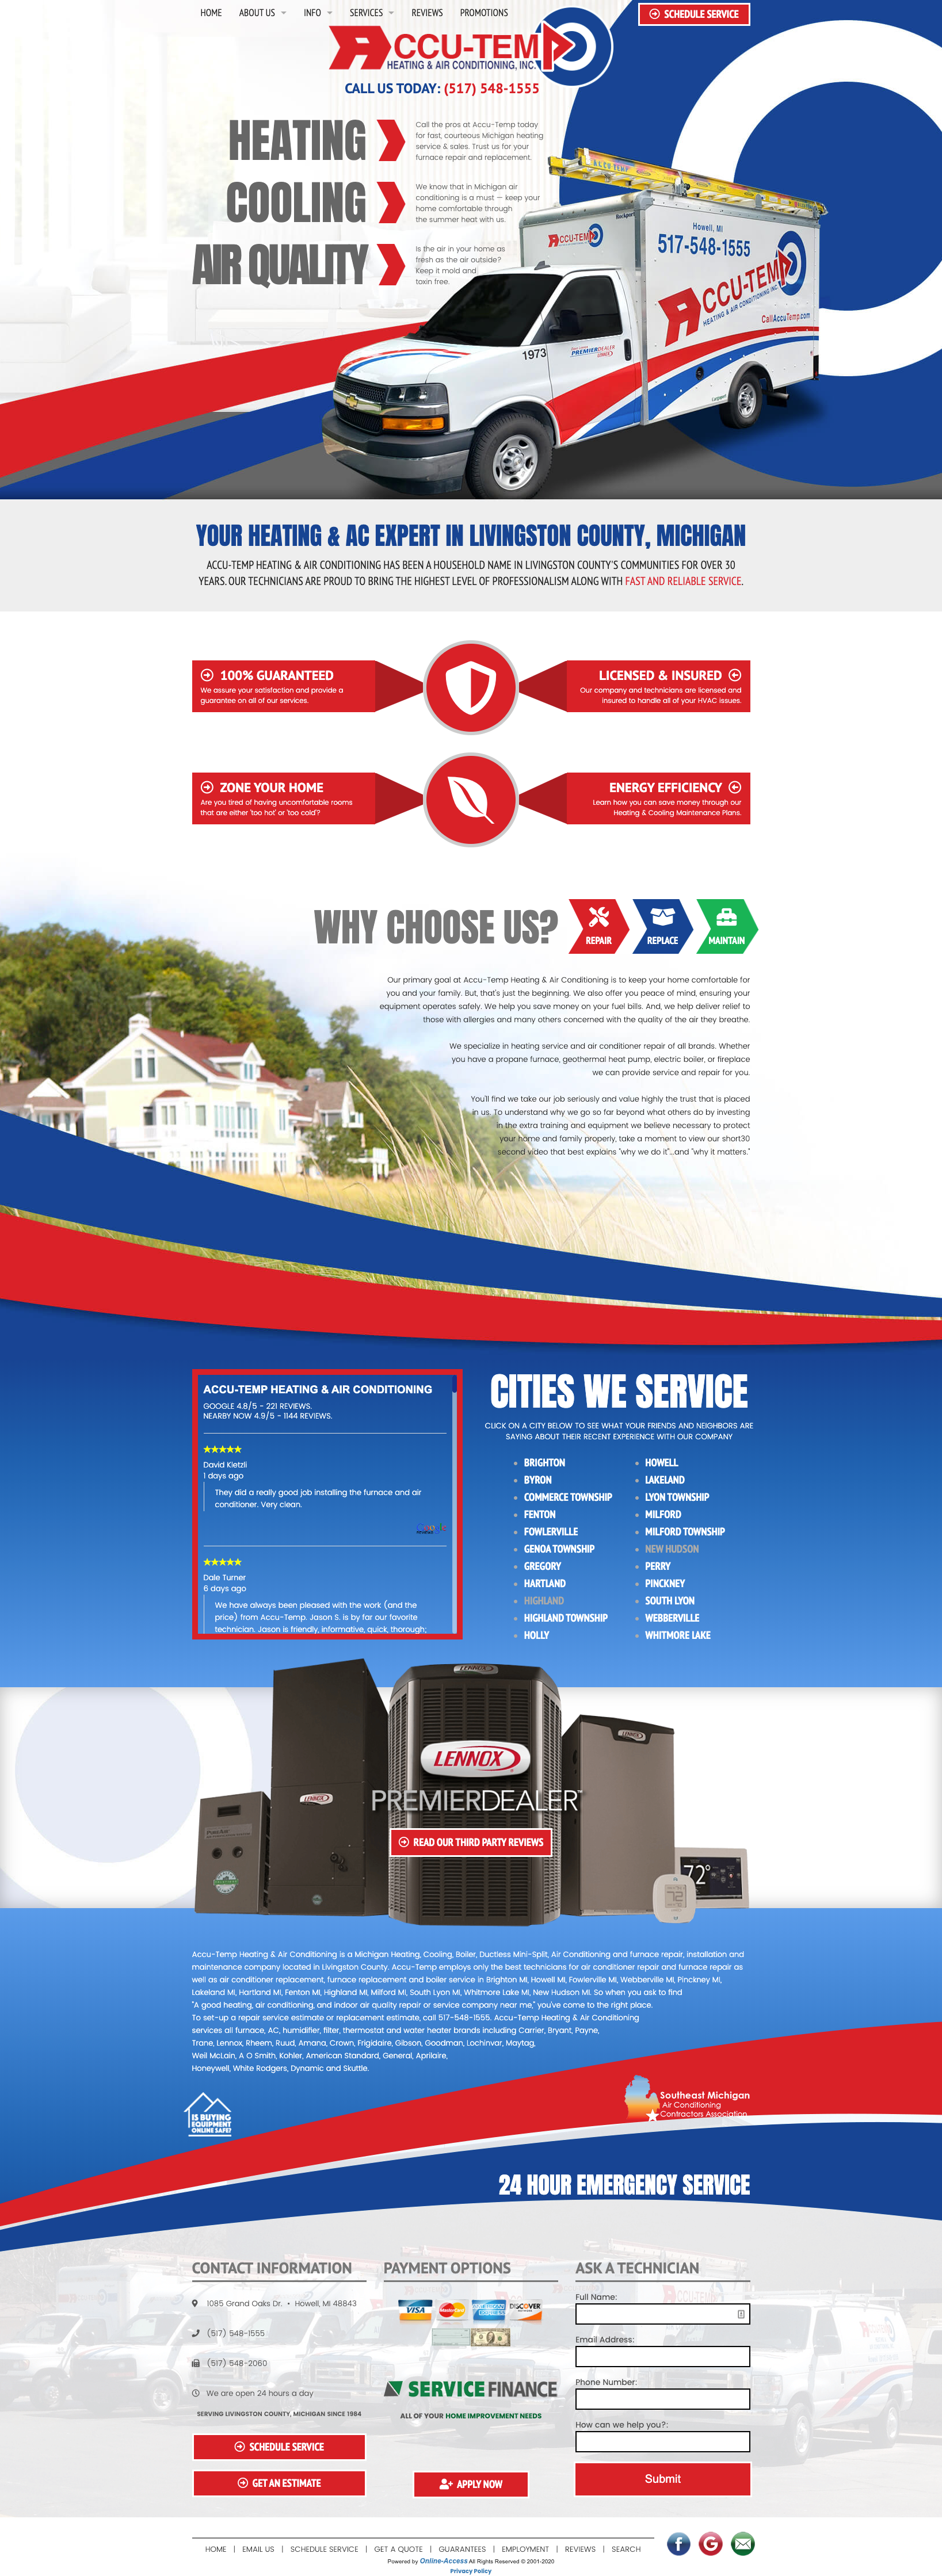 Branded Heating And Air Conditioning Website Design In 2020 Branding Website Design